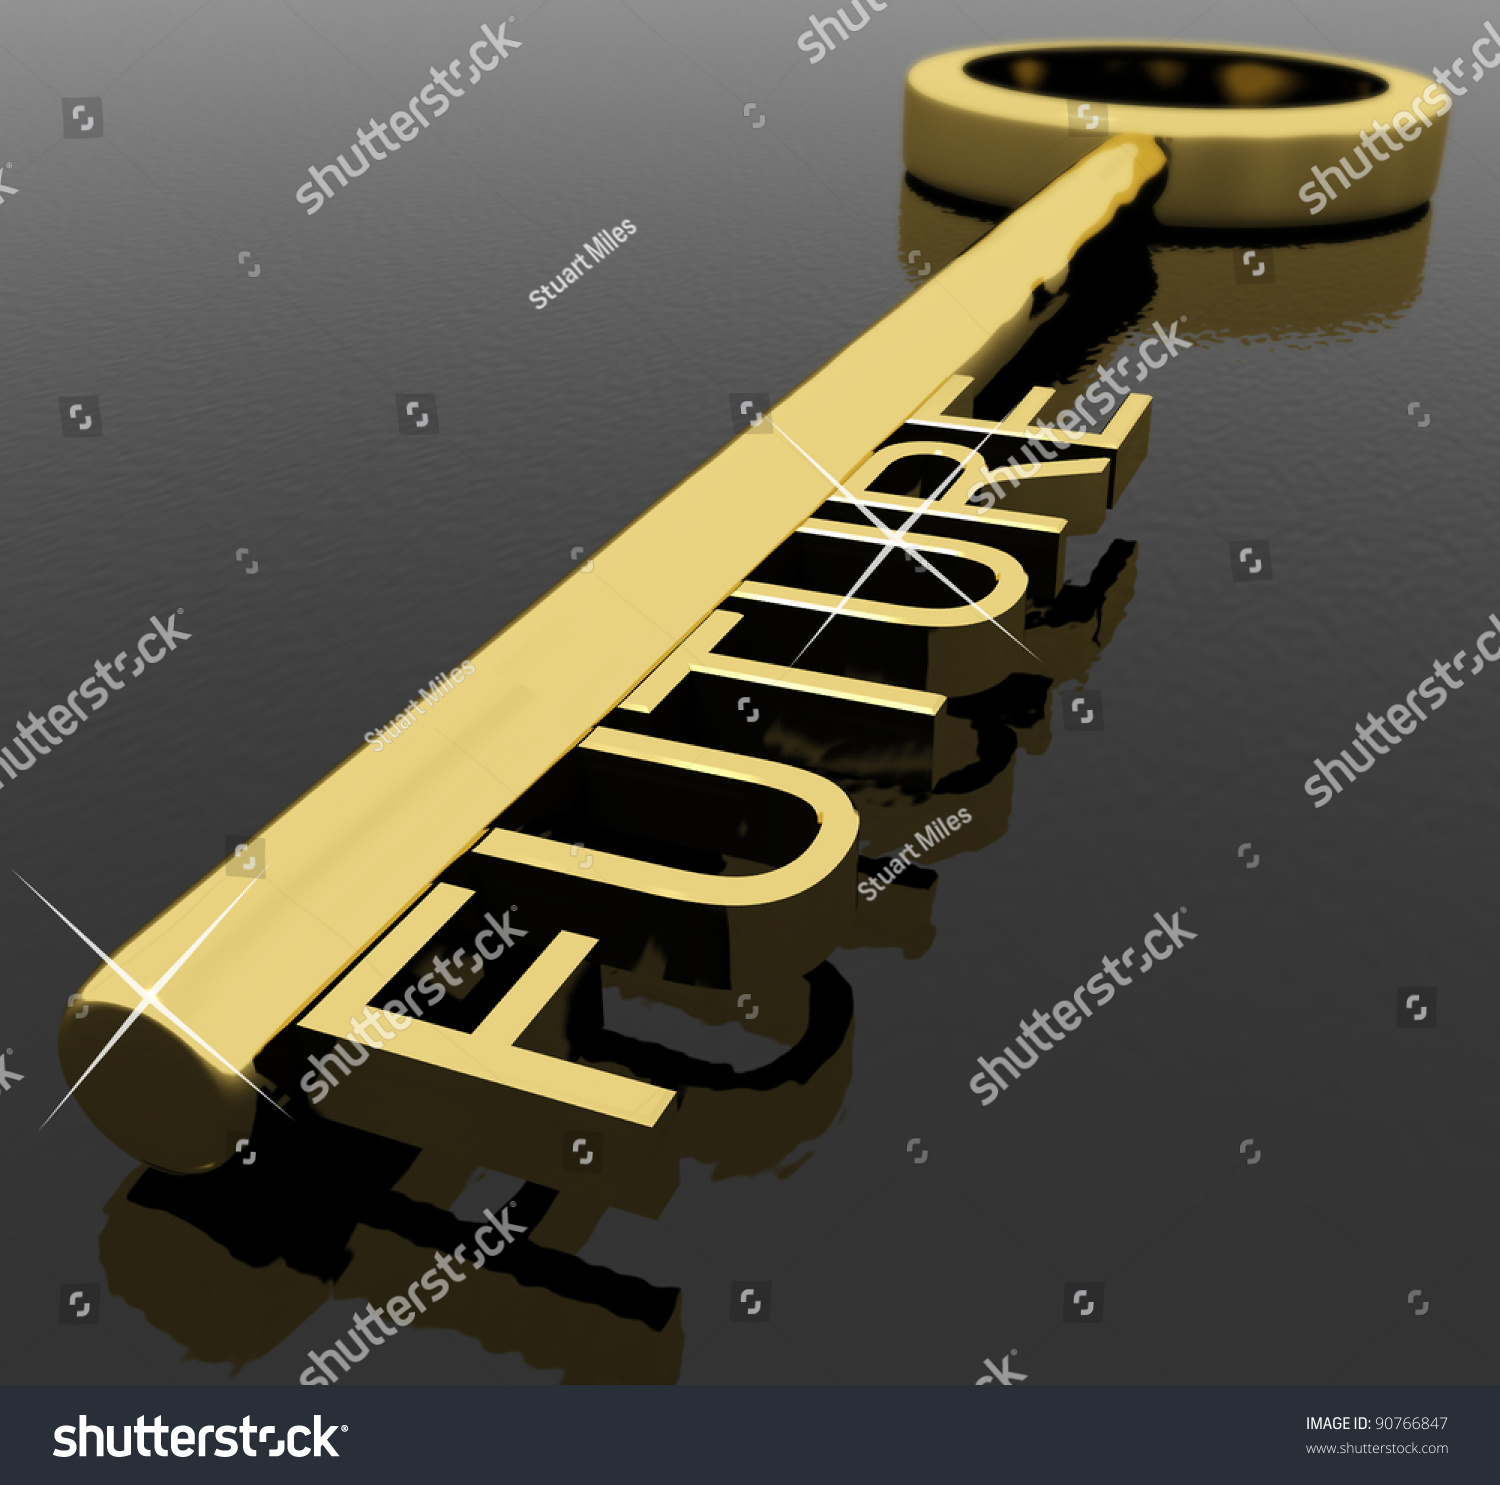 With golden key 3d rendering plan concept with golden key 3d rendering - Gold Key With Future Text As Symbol For Destiny Or Target